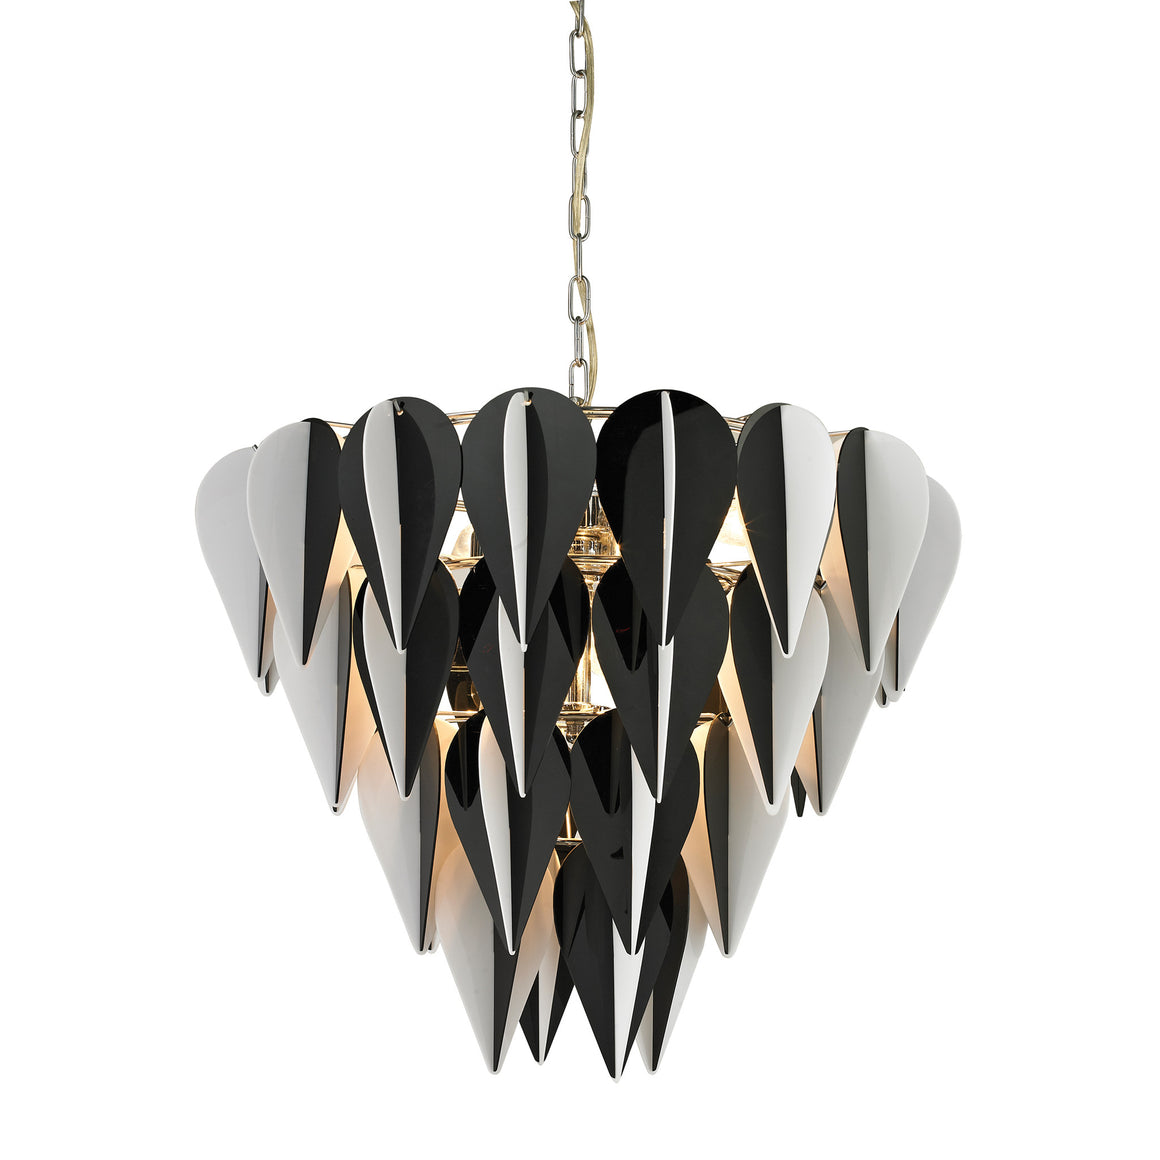 Ashreigh-Mod Inspired Black And White 3 Tier Pendant by Sterling